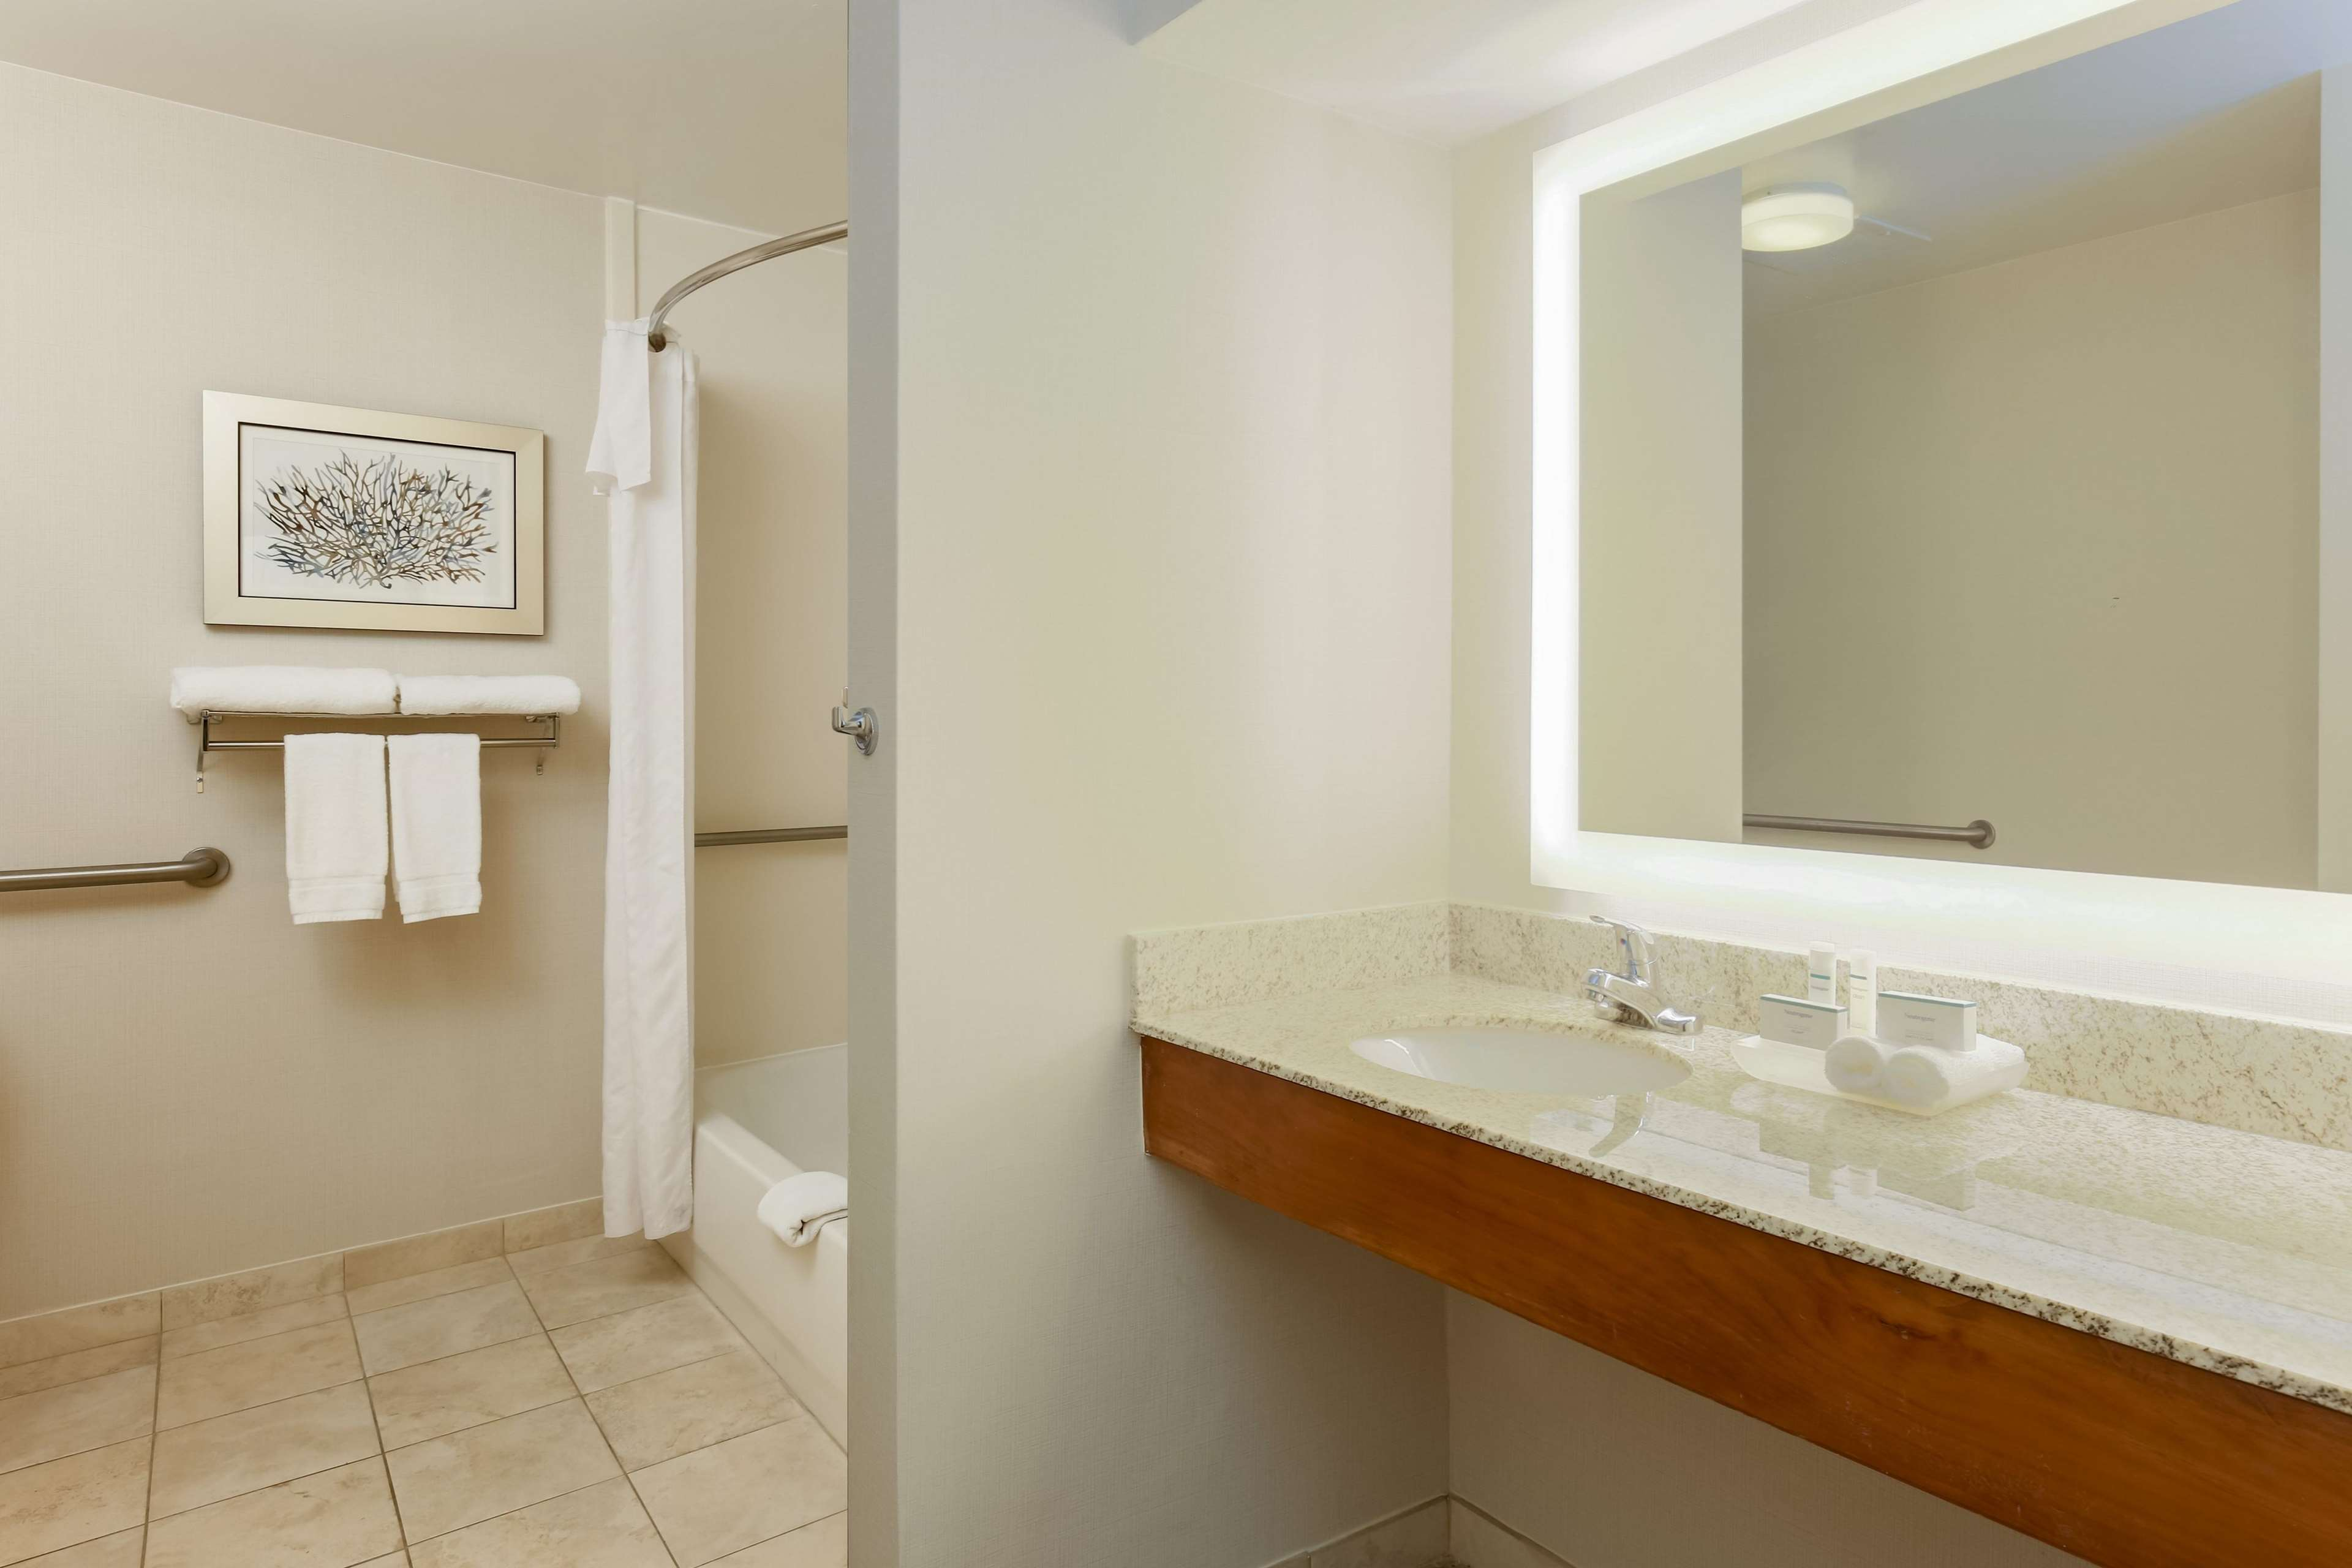 Homewood Suites by Hilton St. Petersburg Clearwater image 29